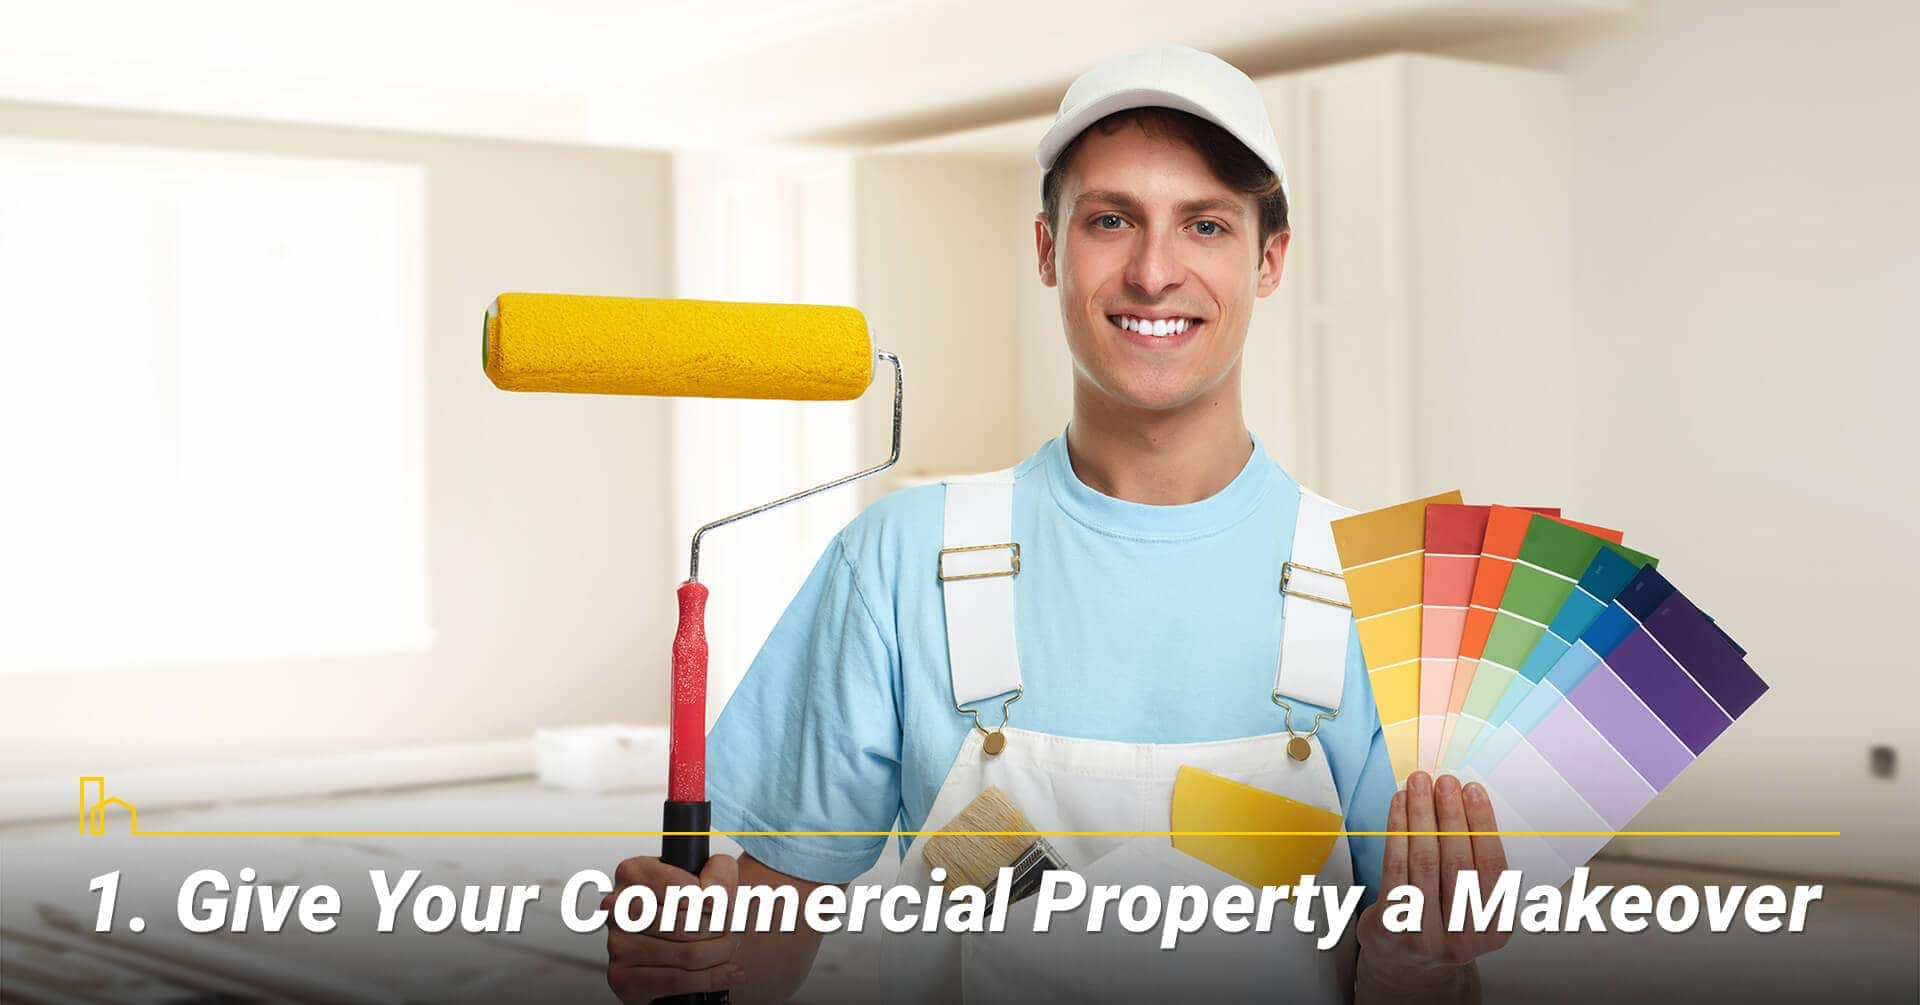 Give Your Commercial Property a Makeover, upgrade your property